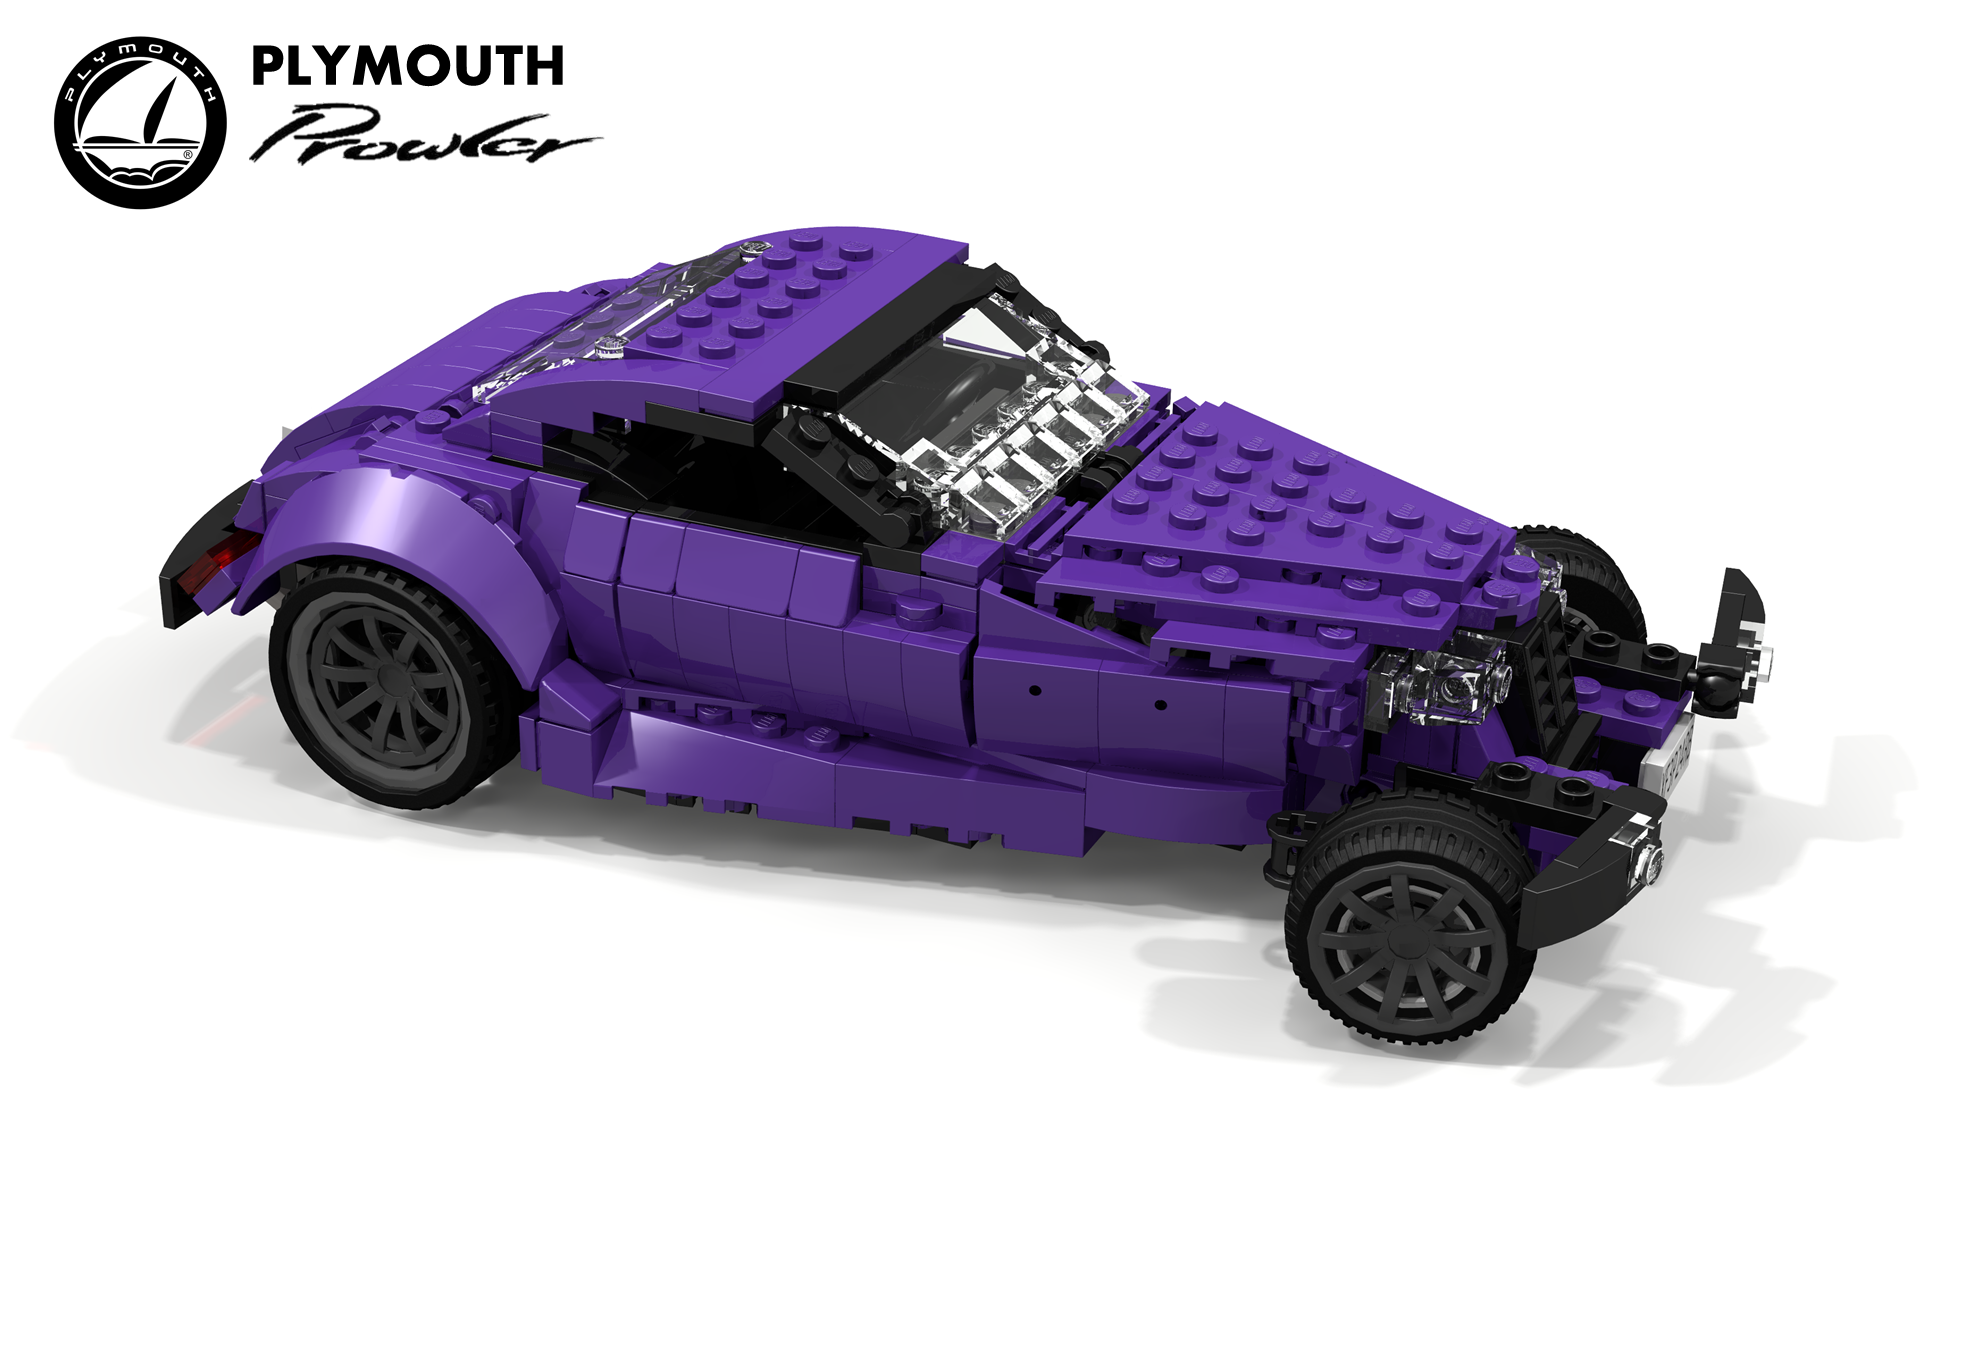 plymouth_prowler_03.png